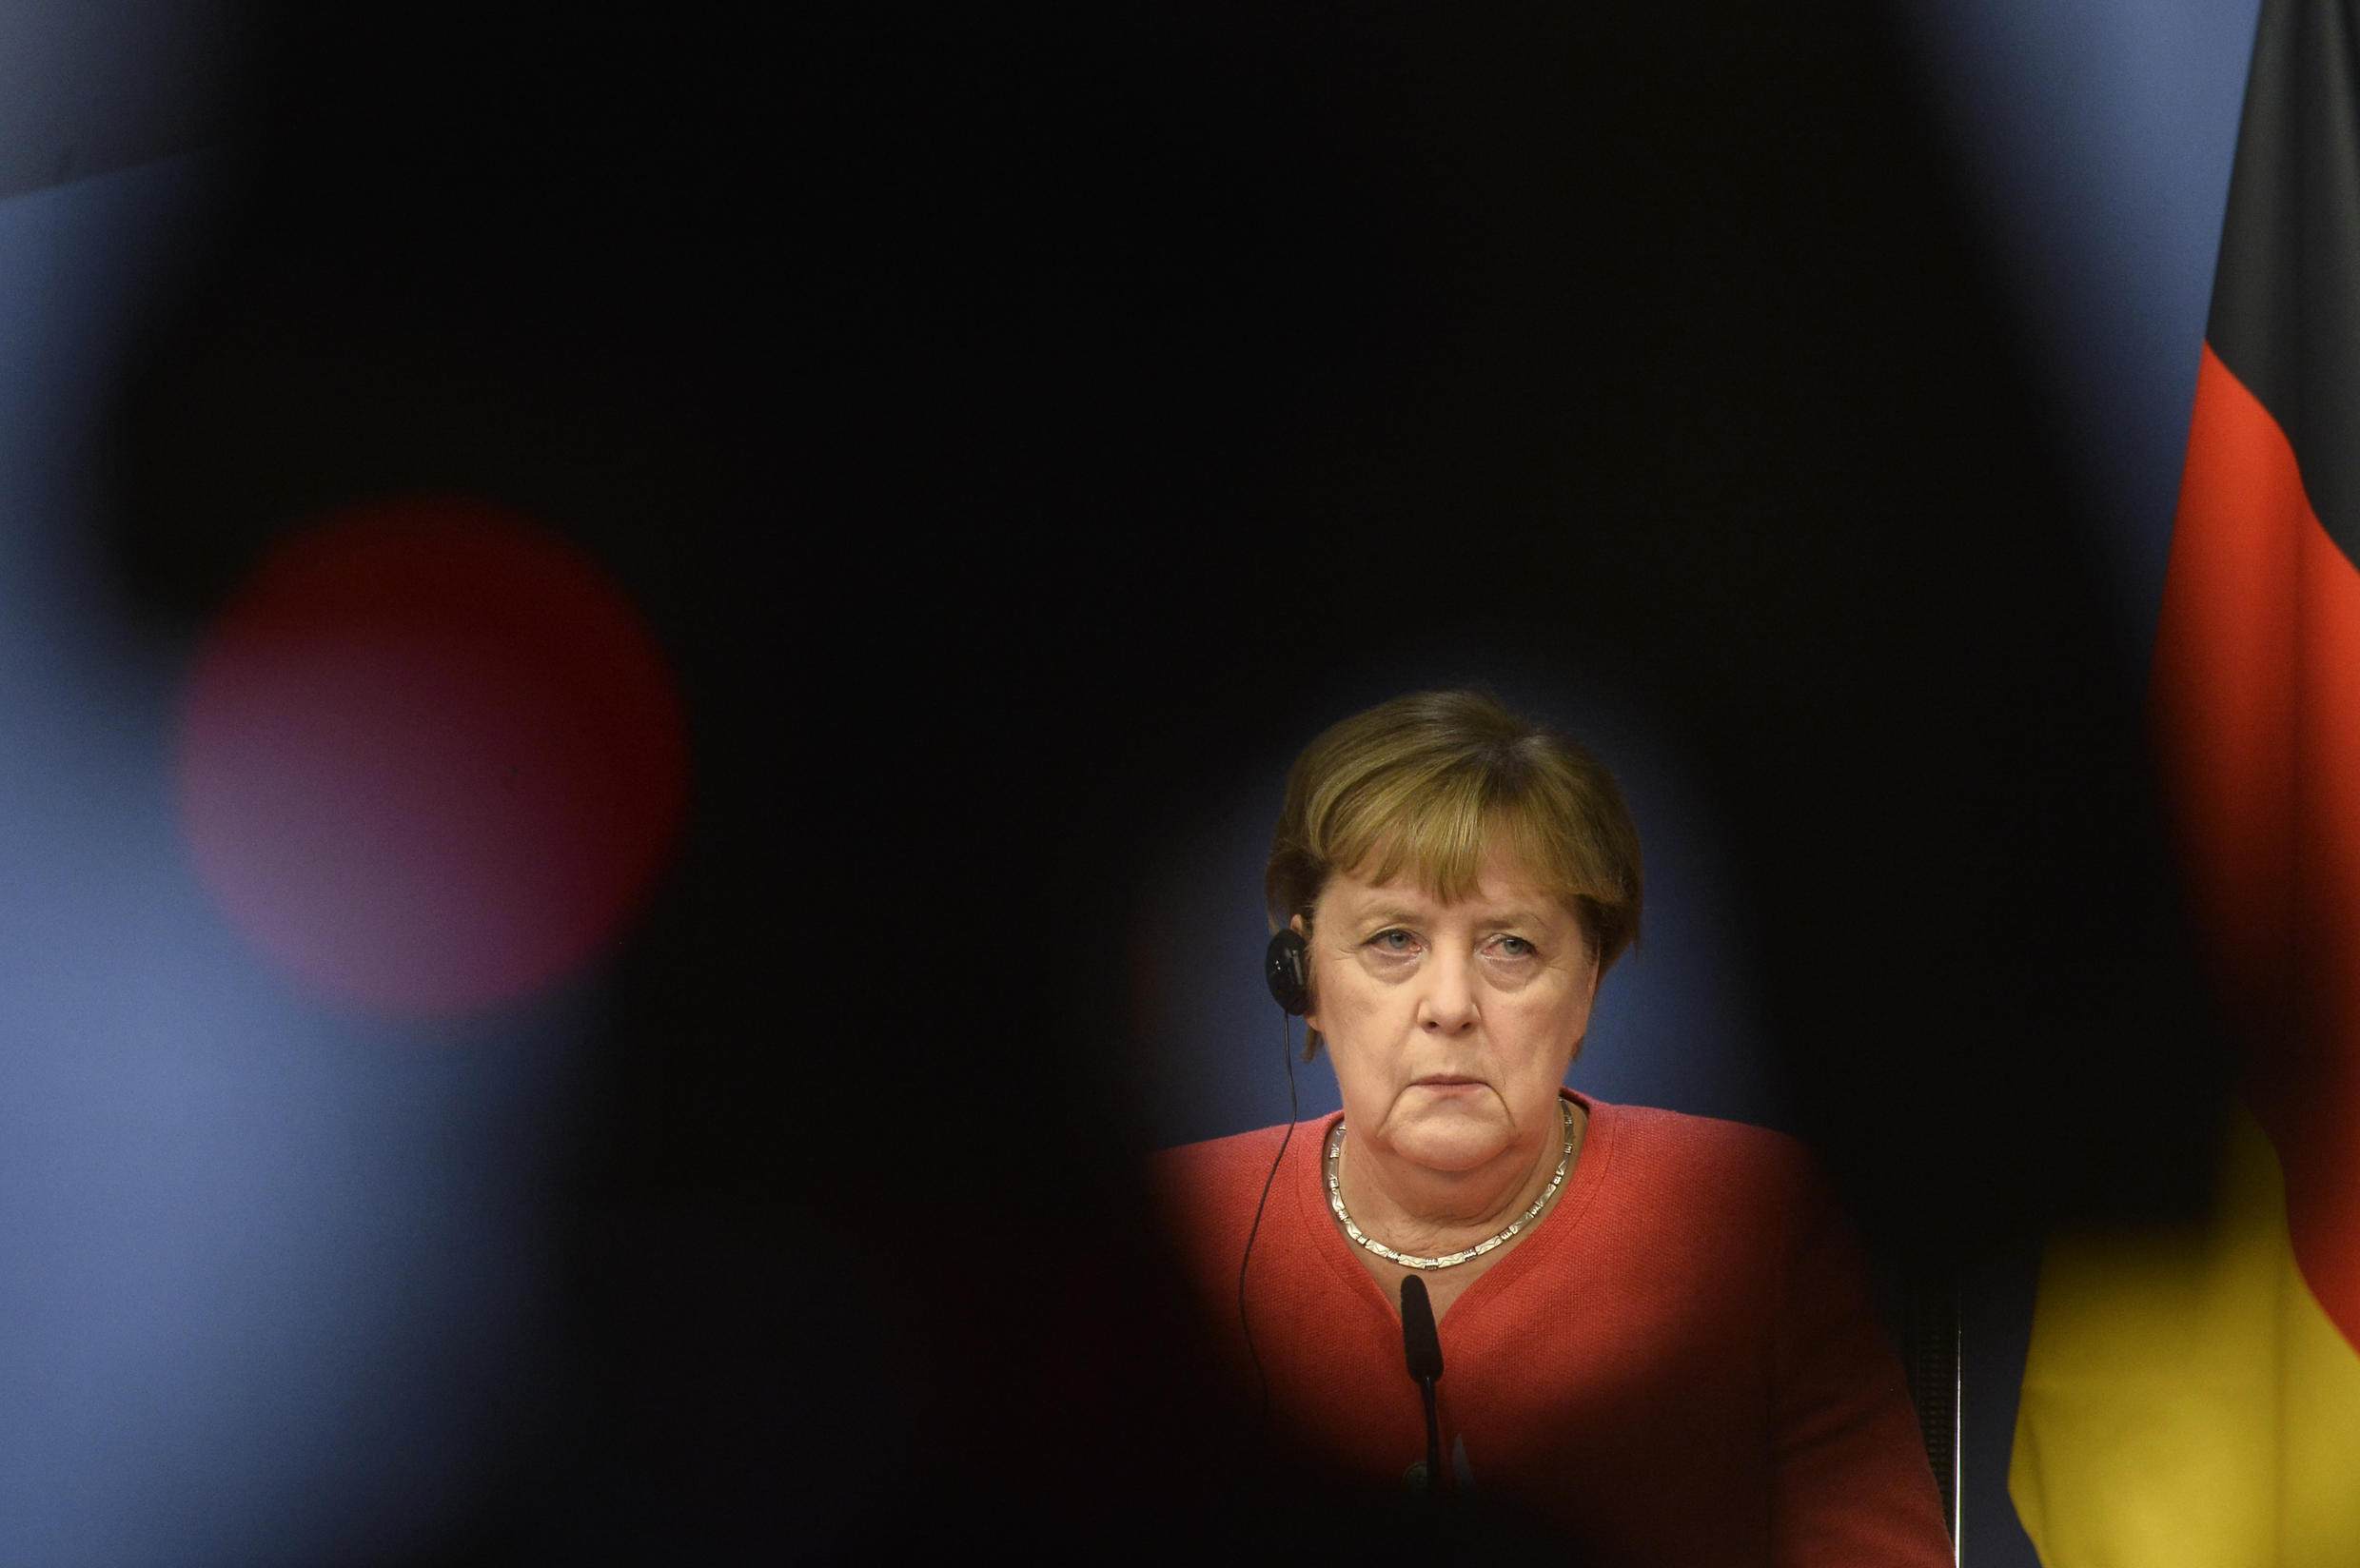 A pastor's daughter who grew up behind the Iron Curtain in the communist German Democratic Republic, Angela Merkel, 66, said the coronavirus lockdowns caused her to reflect a lot on her childhood and youth